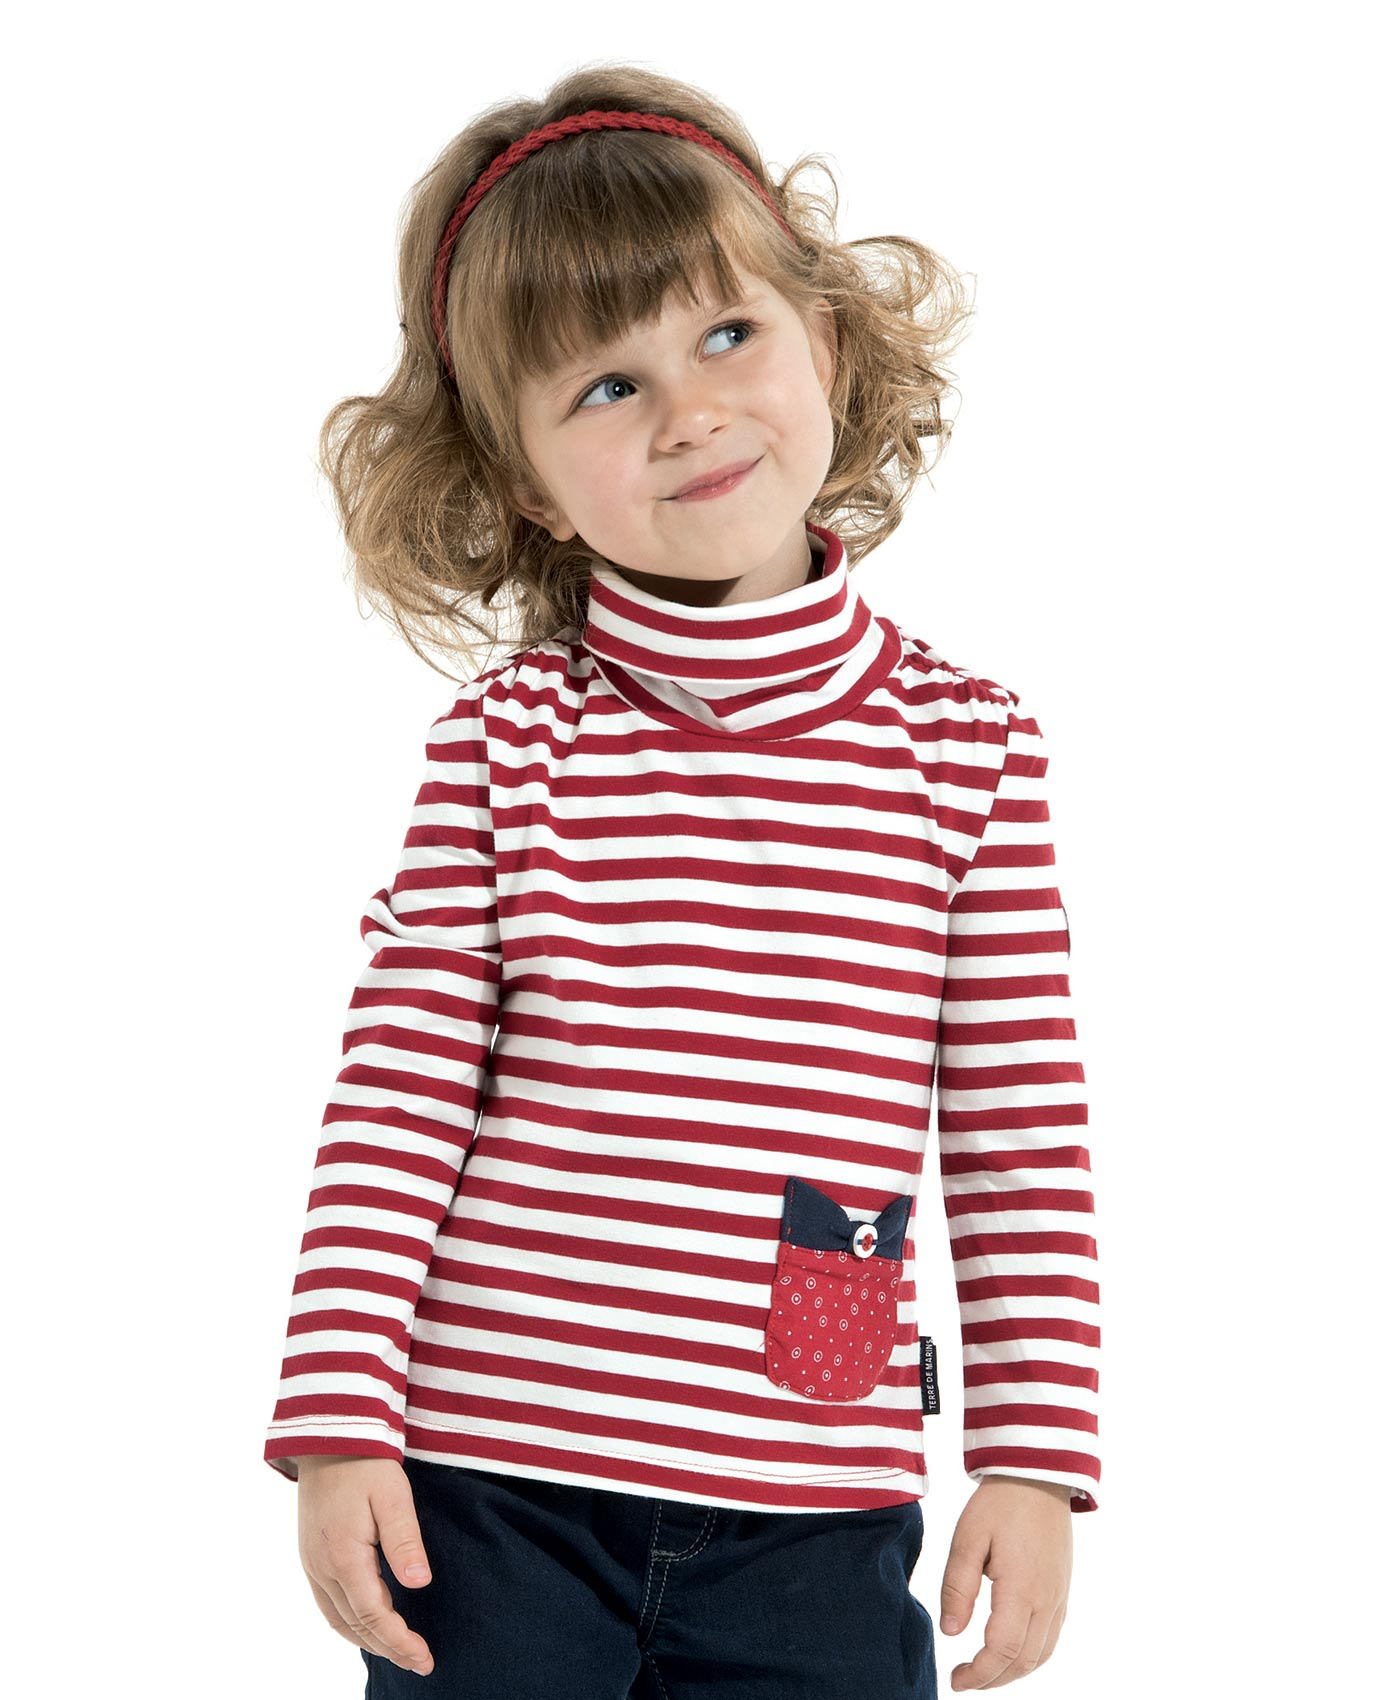 tee shirt manches longues fille ray rouge t shirt polo mode enfant fille terre de marins. Black Bedroom Furniture Sets. Home Design Ideas